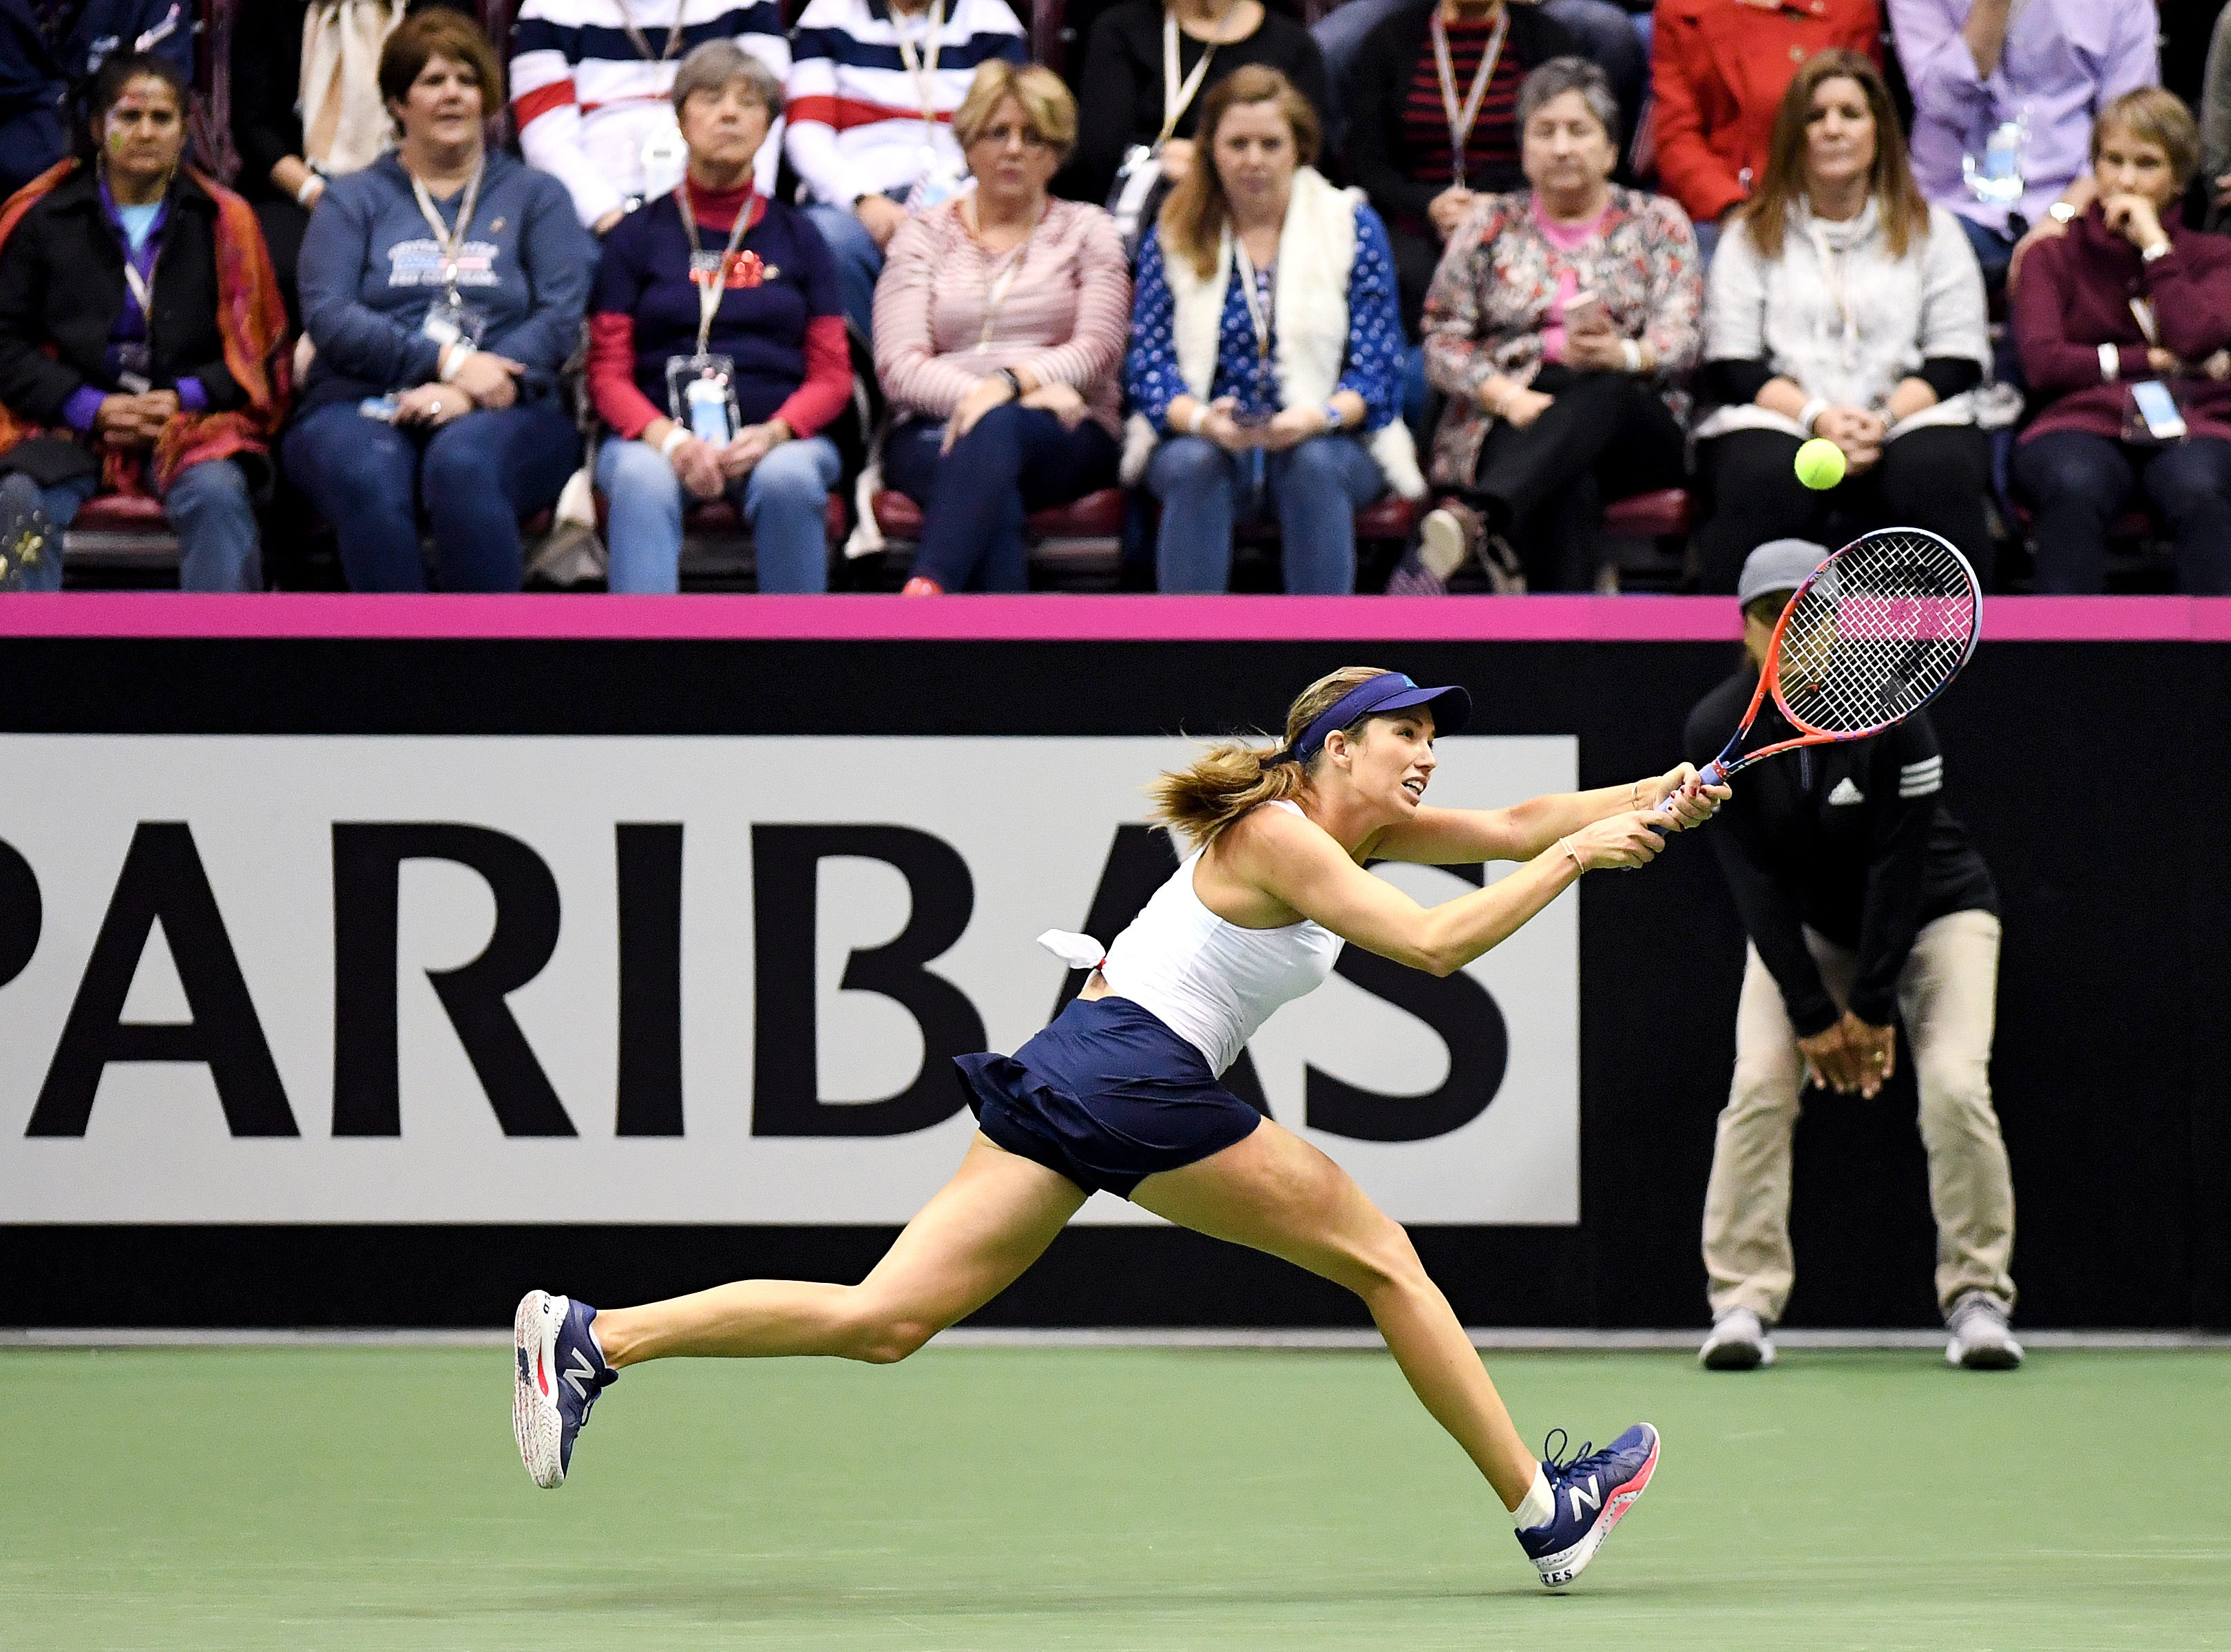 Team USA's Danielle Collins runs after the ball to return it  during her match against Team Australia's Daria Gavrilova in the first round of the Fed Cup at the U.S. Cellular Center on Feb. 10, 2019.